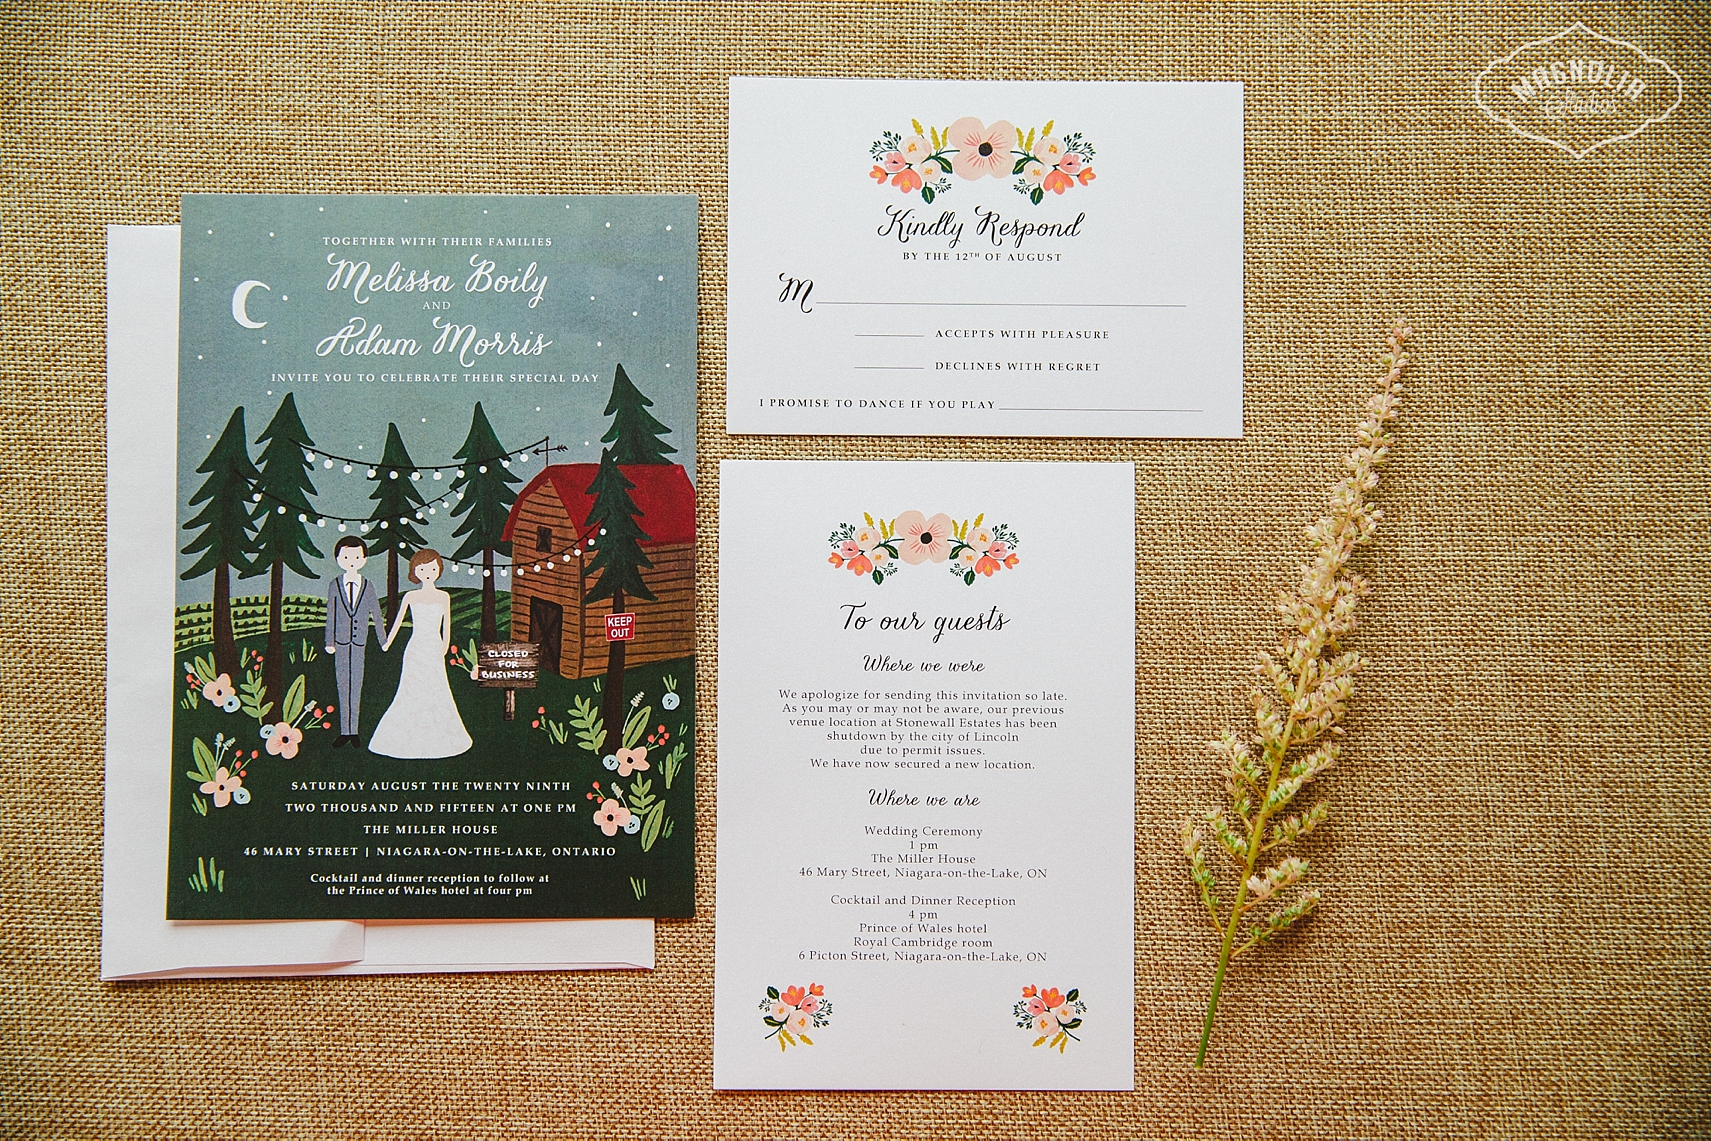 Niagara on the Lake wedding invites